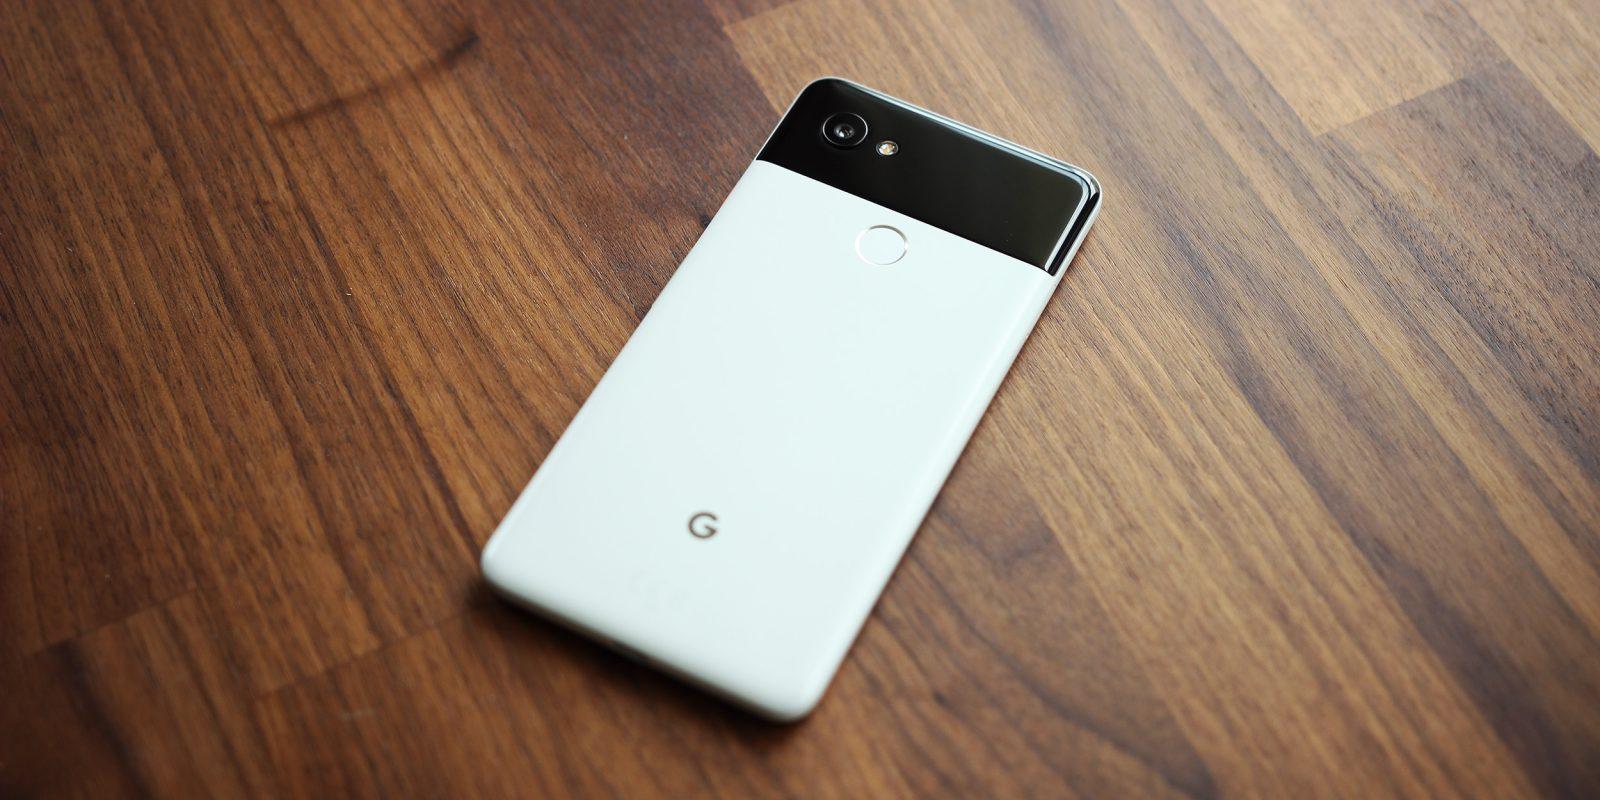 The Android 10 update seems to be breaking Wi-Fi on some Pixel 2 devices